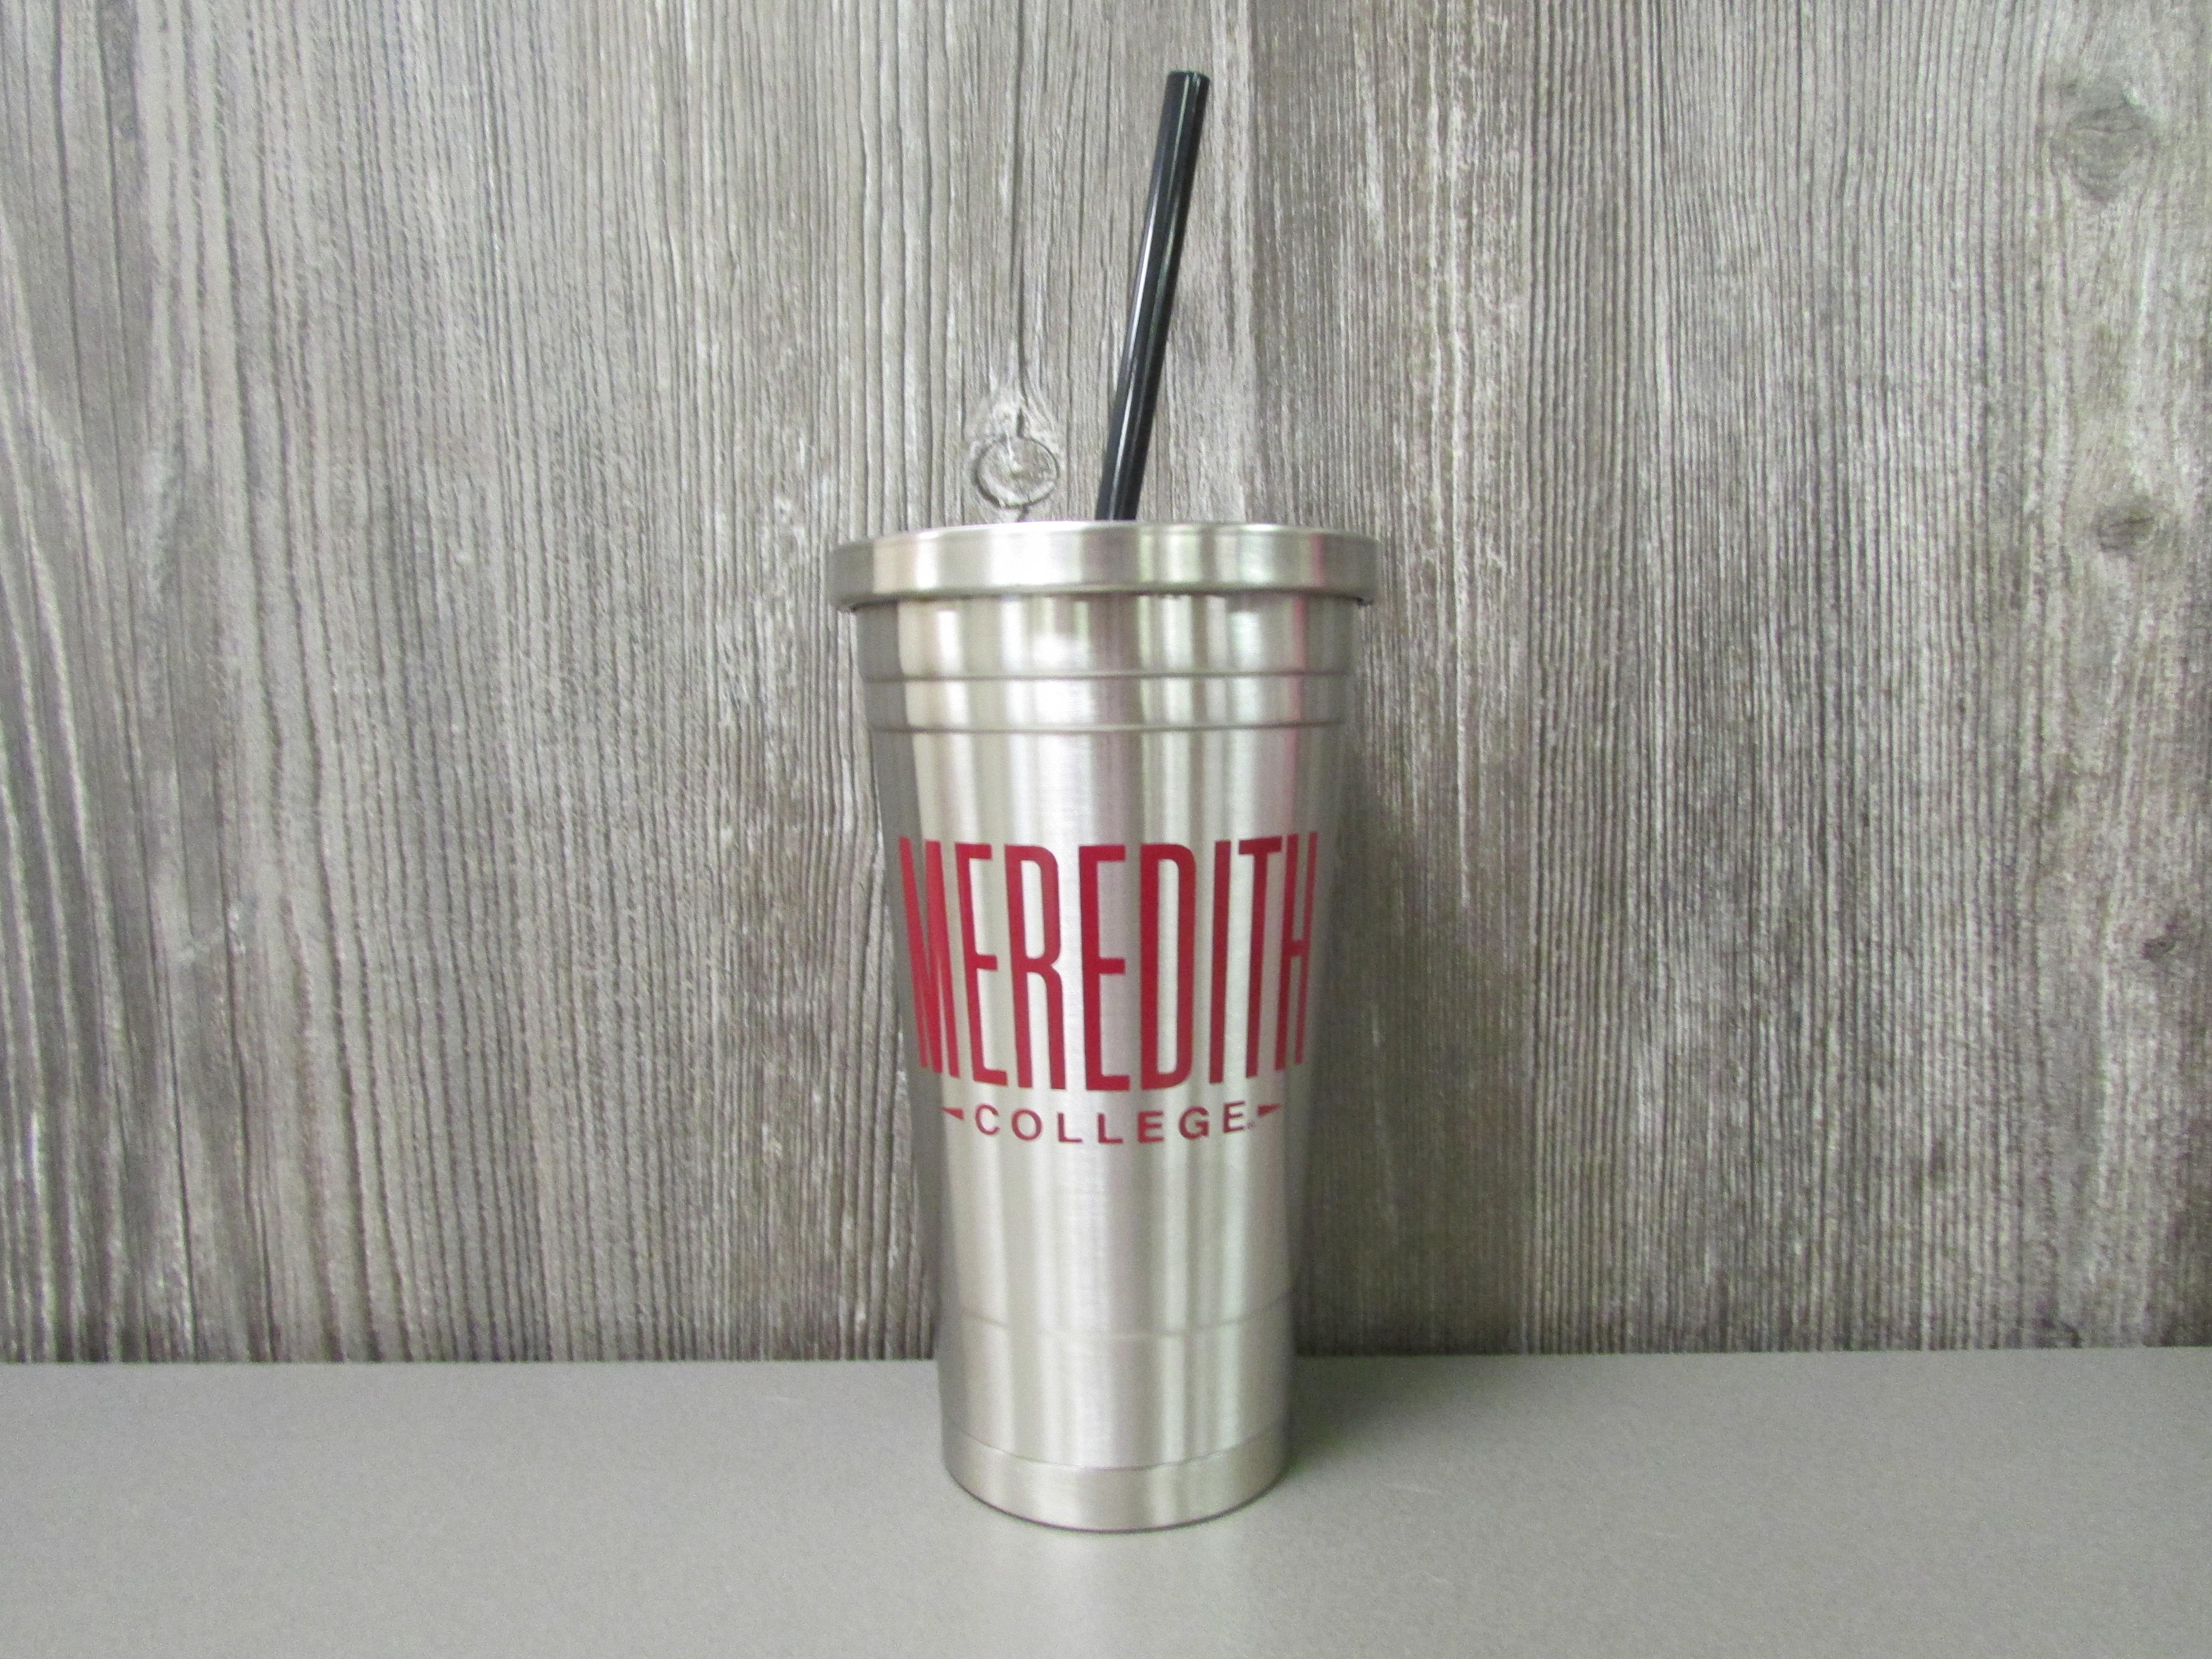 Image for the Water Tumbler w/Straw product